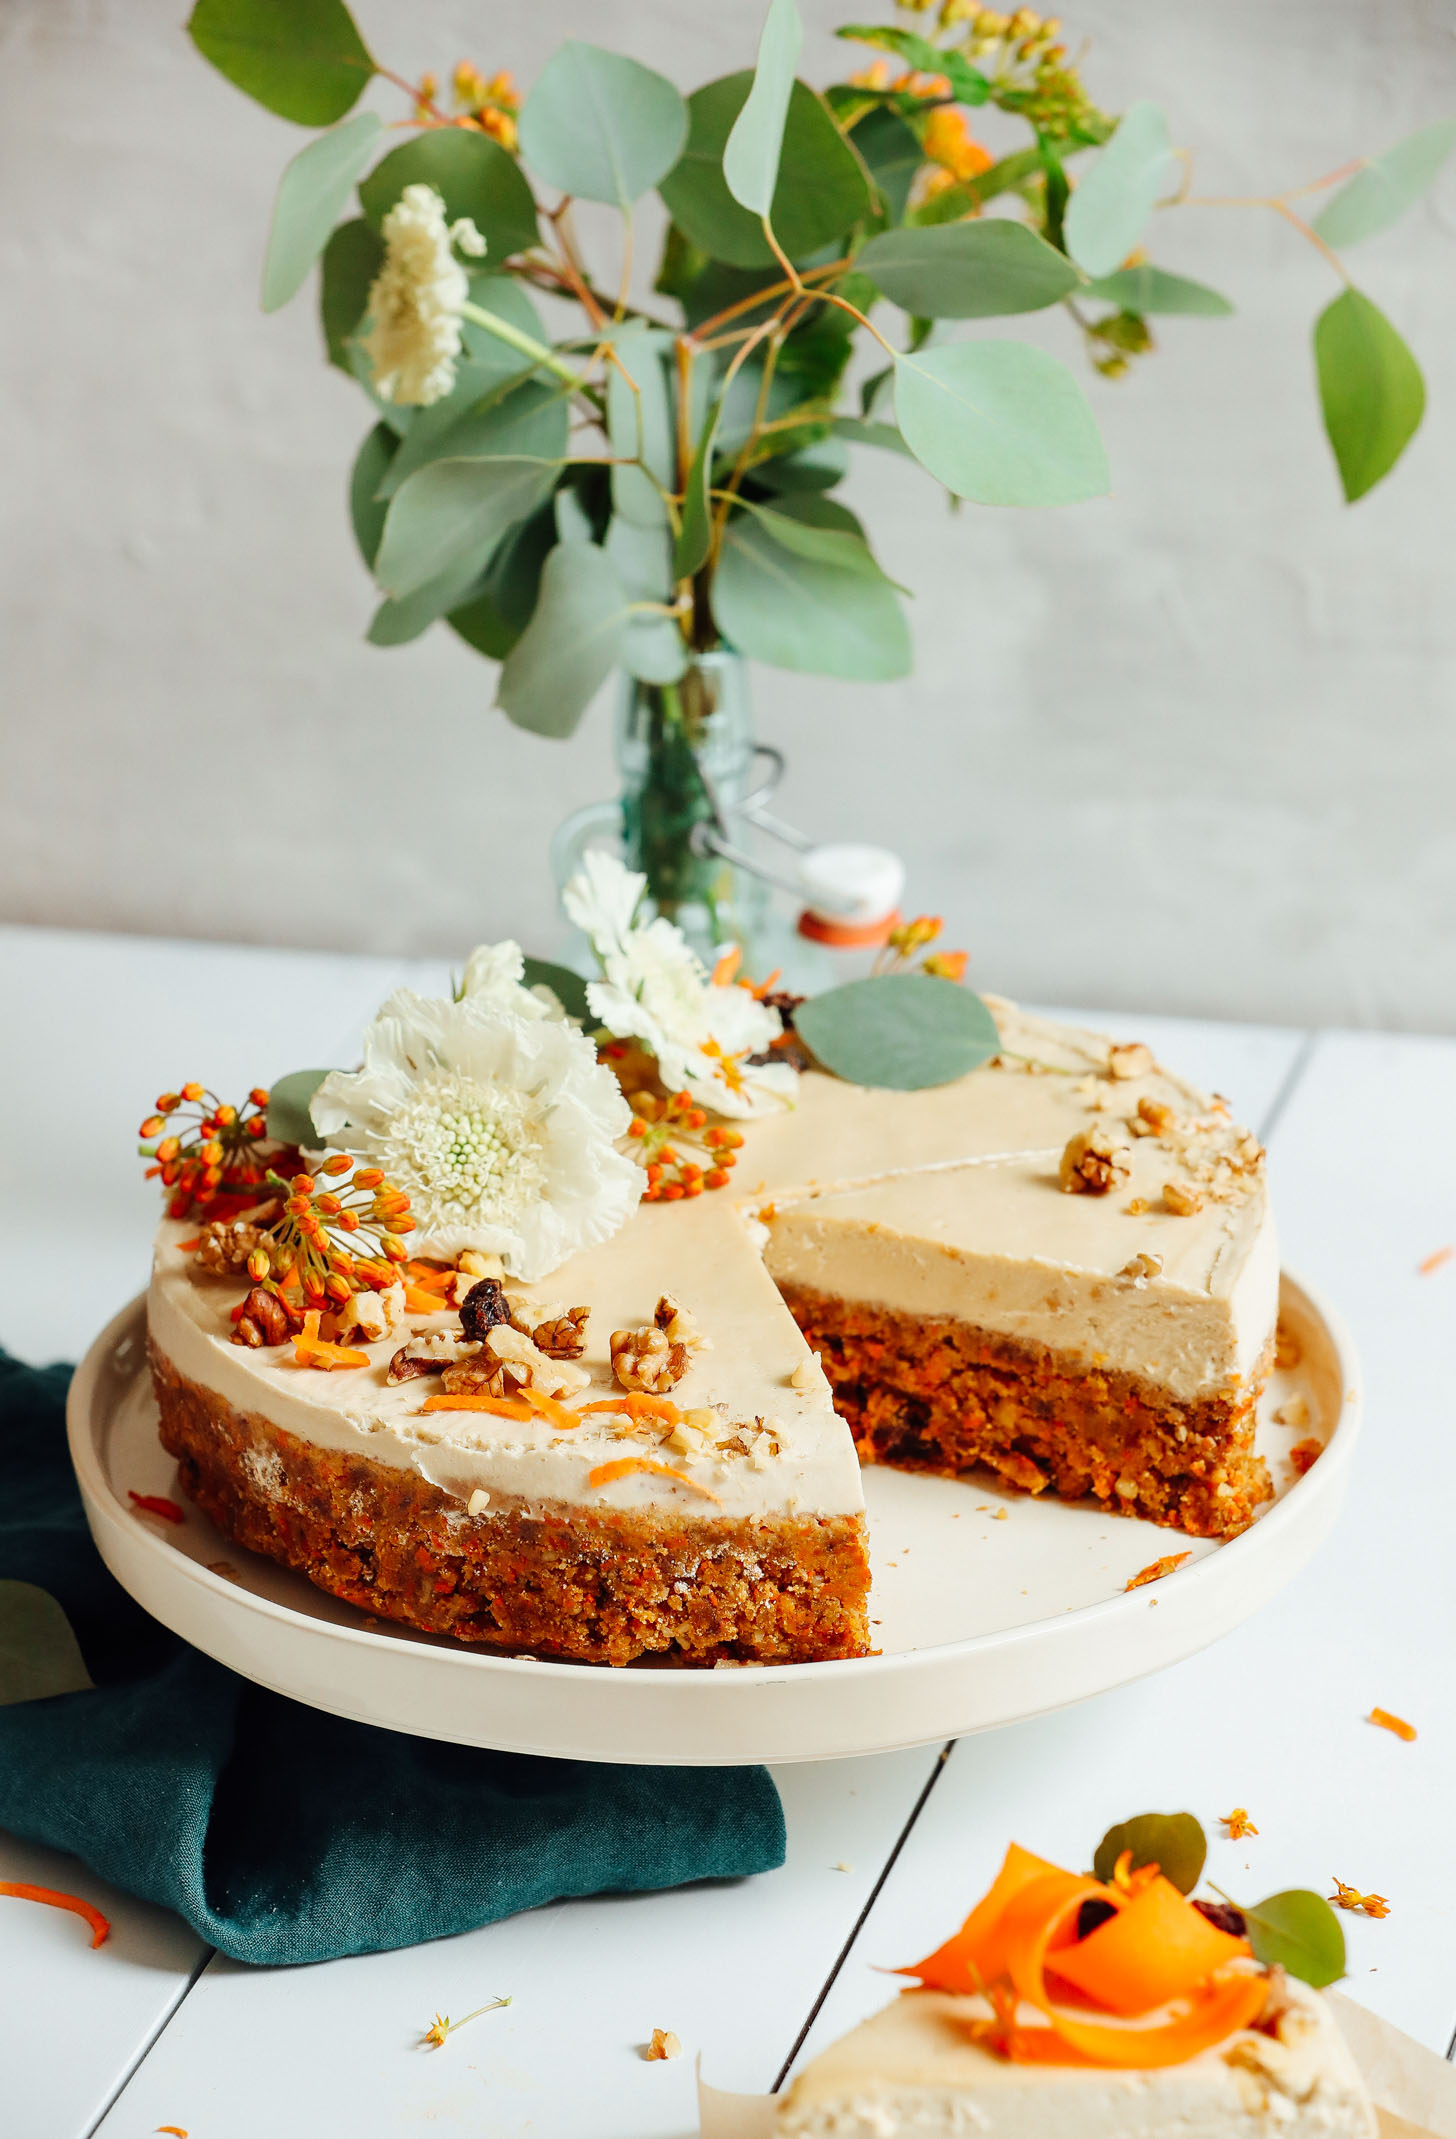 Raw Vegan Carrot Cake decorated with flowers, walnuts, shredded carrots, and raisins